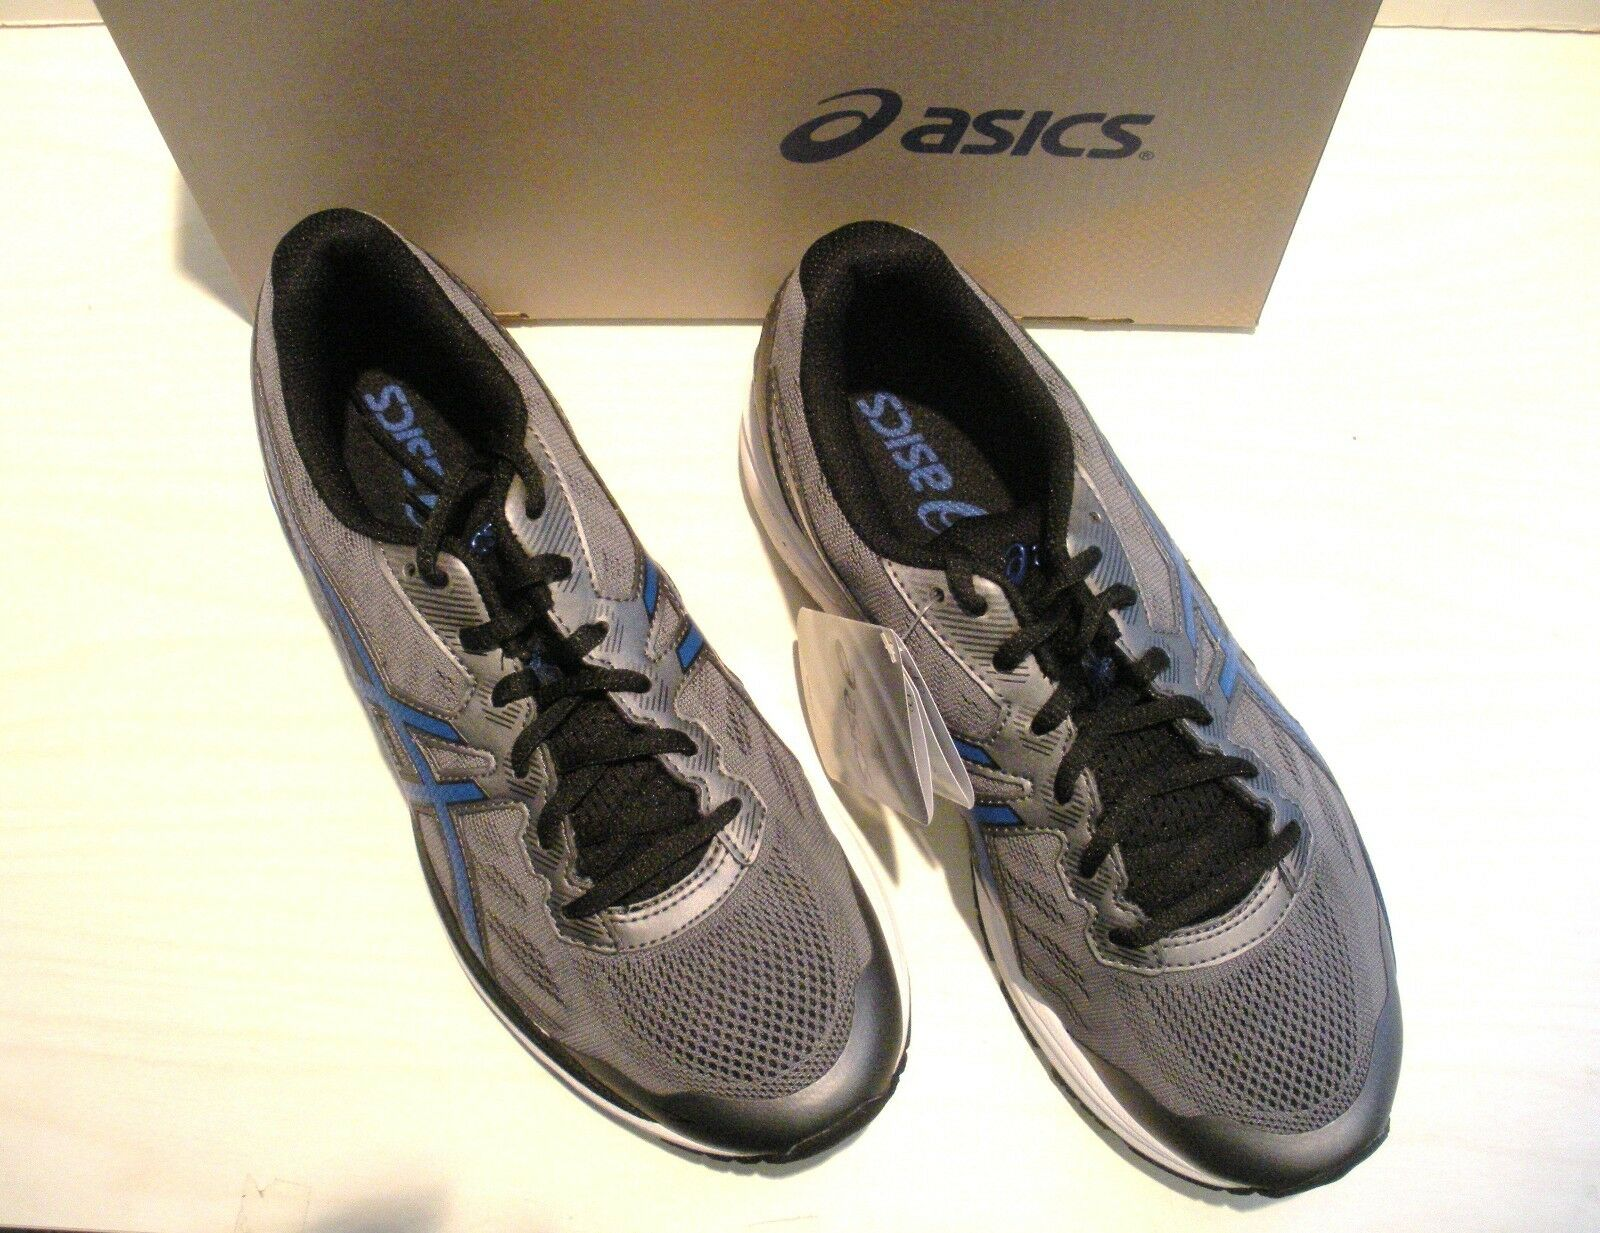 ASICS hommes GT-1000 5 RUNNING-SNEAKERS- -T6A3N-9745- Chaussures -T6A3N-9745- RUNNING-SNEAKERS- CARBON/ IMPERIAL- SZ 8 269c86